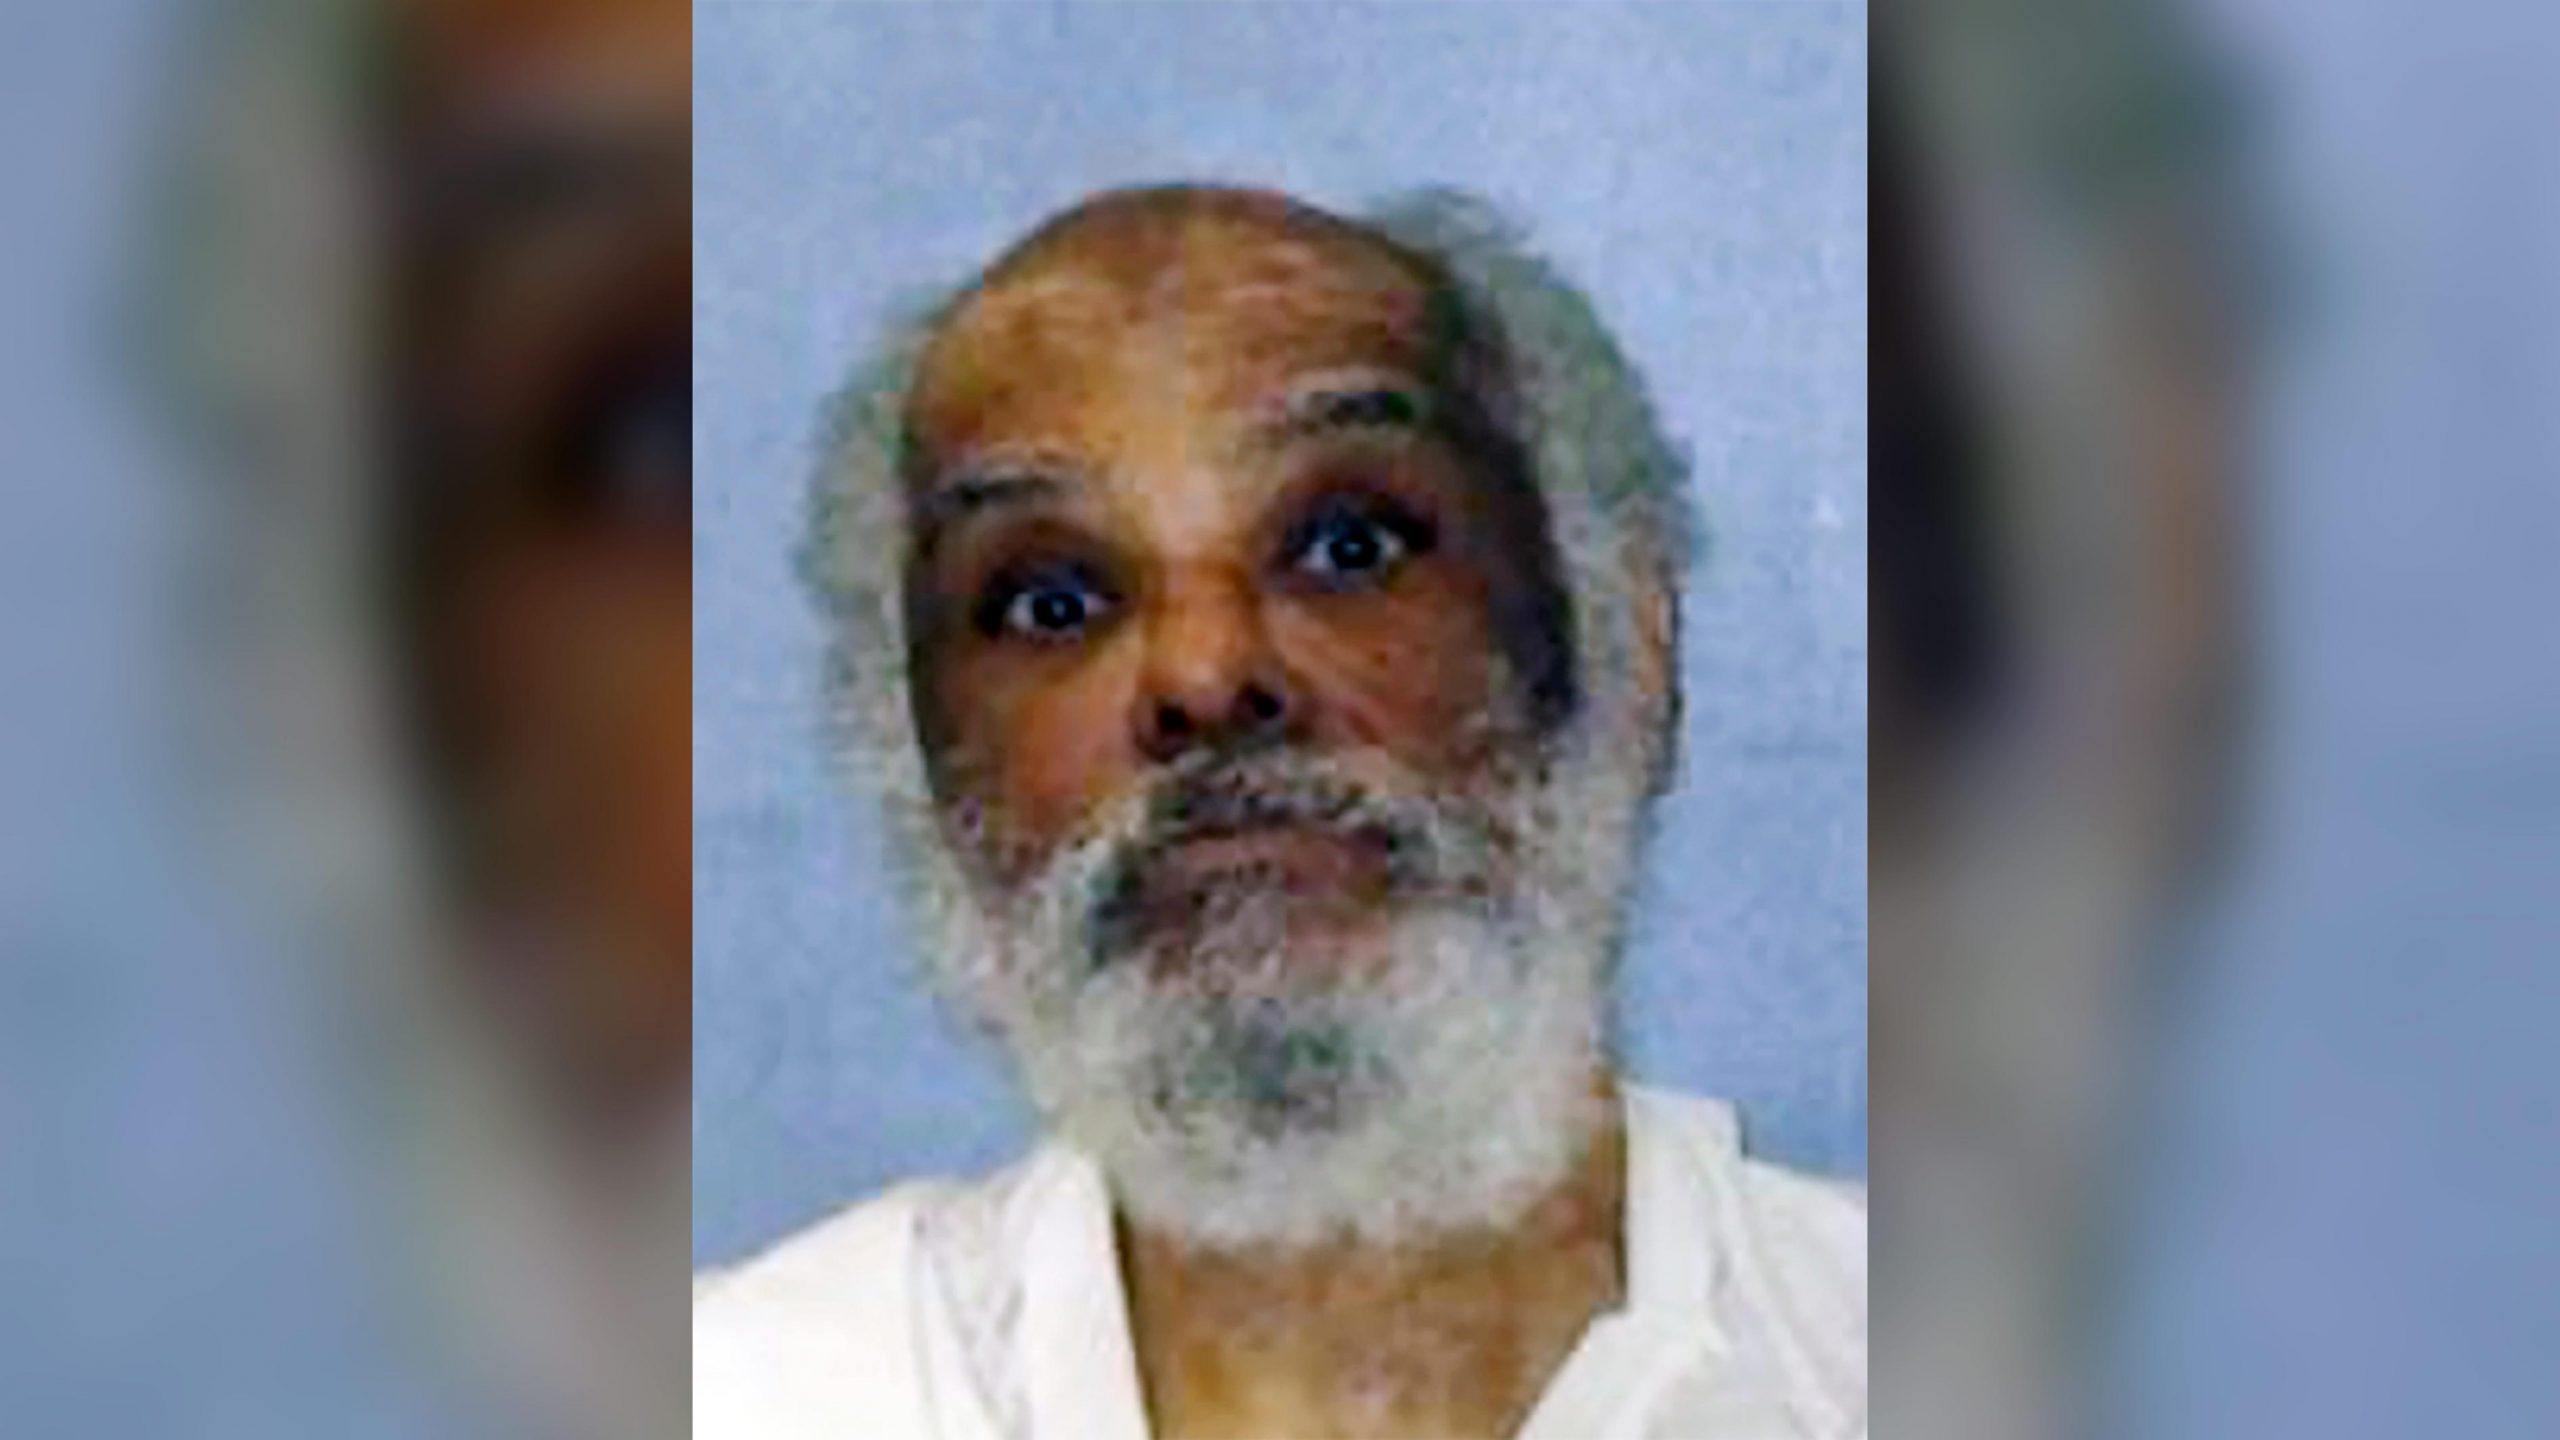 Texas' longest-serving death row inmate to get new sentence - KVIA